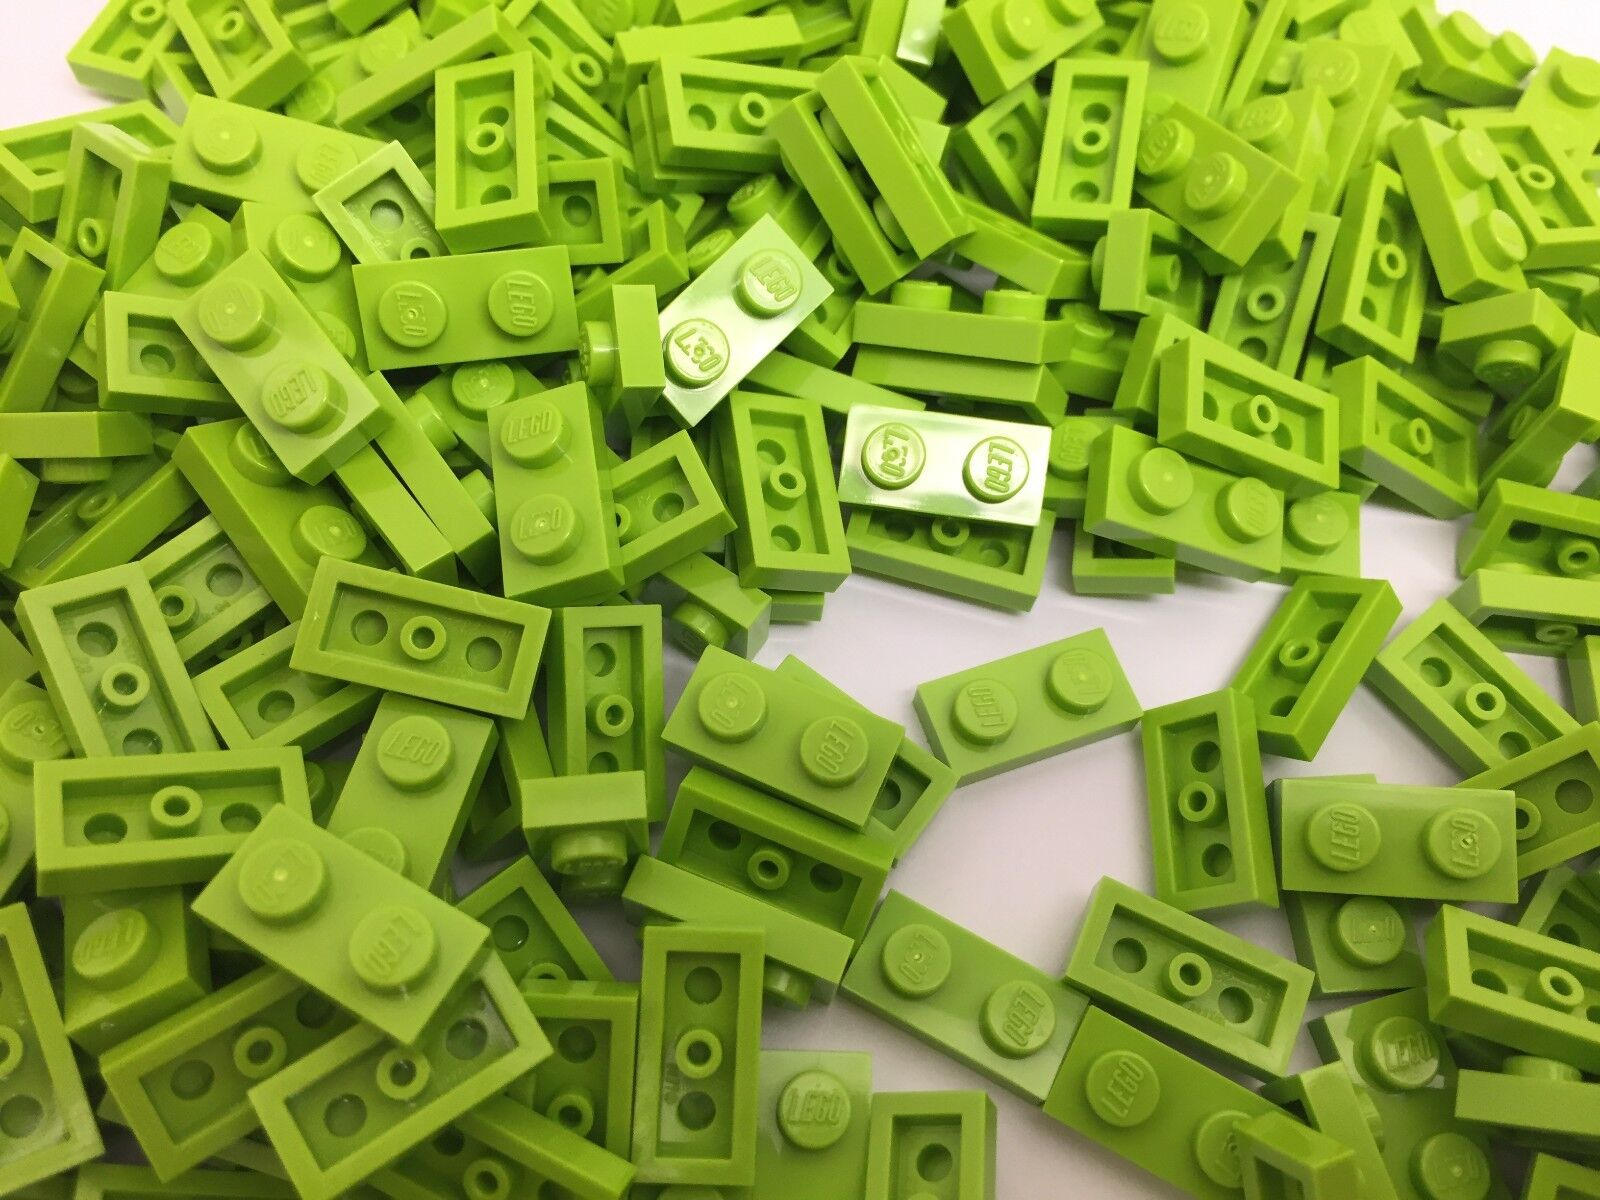 NEW Lime Green 1x1 Pin LEGO 100 Pieces Per Order